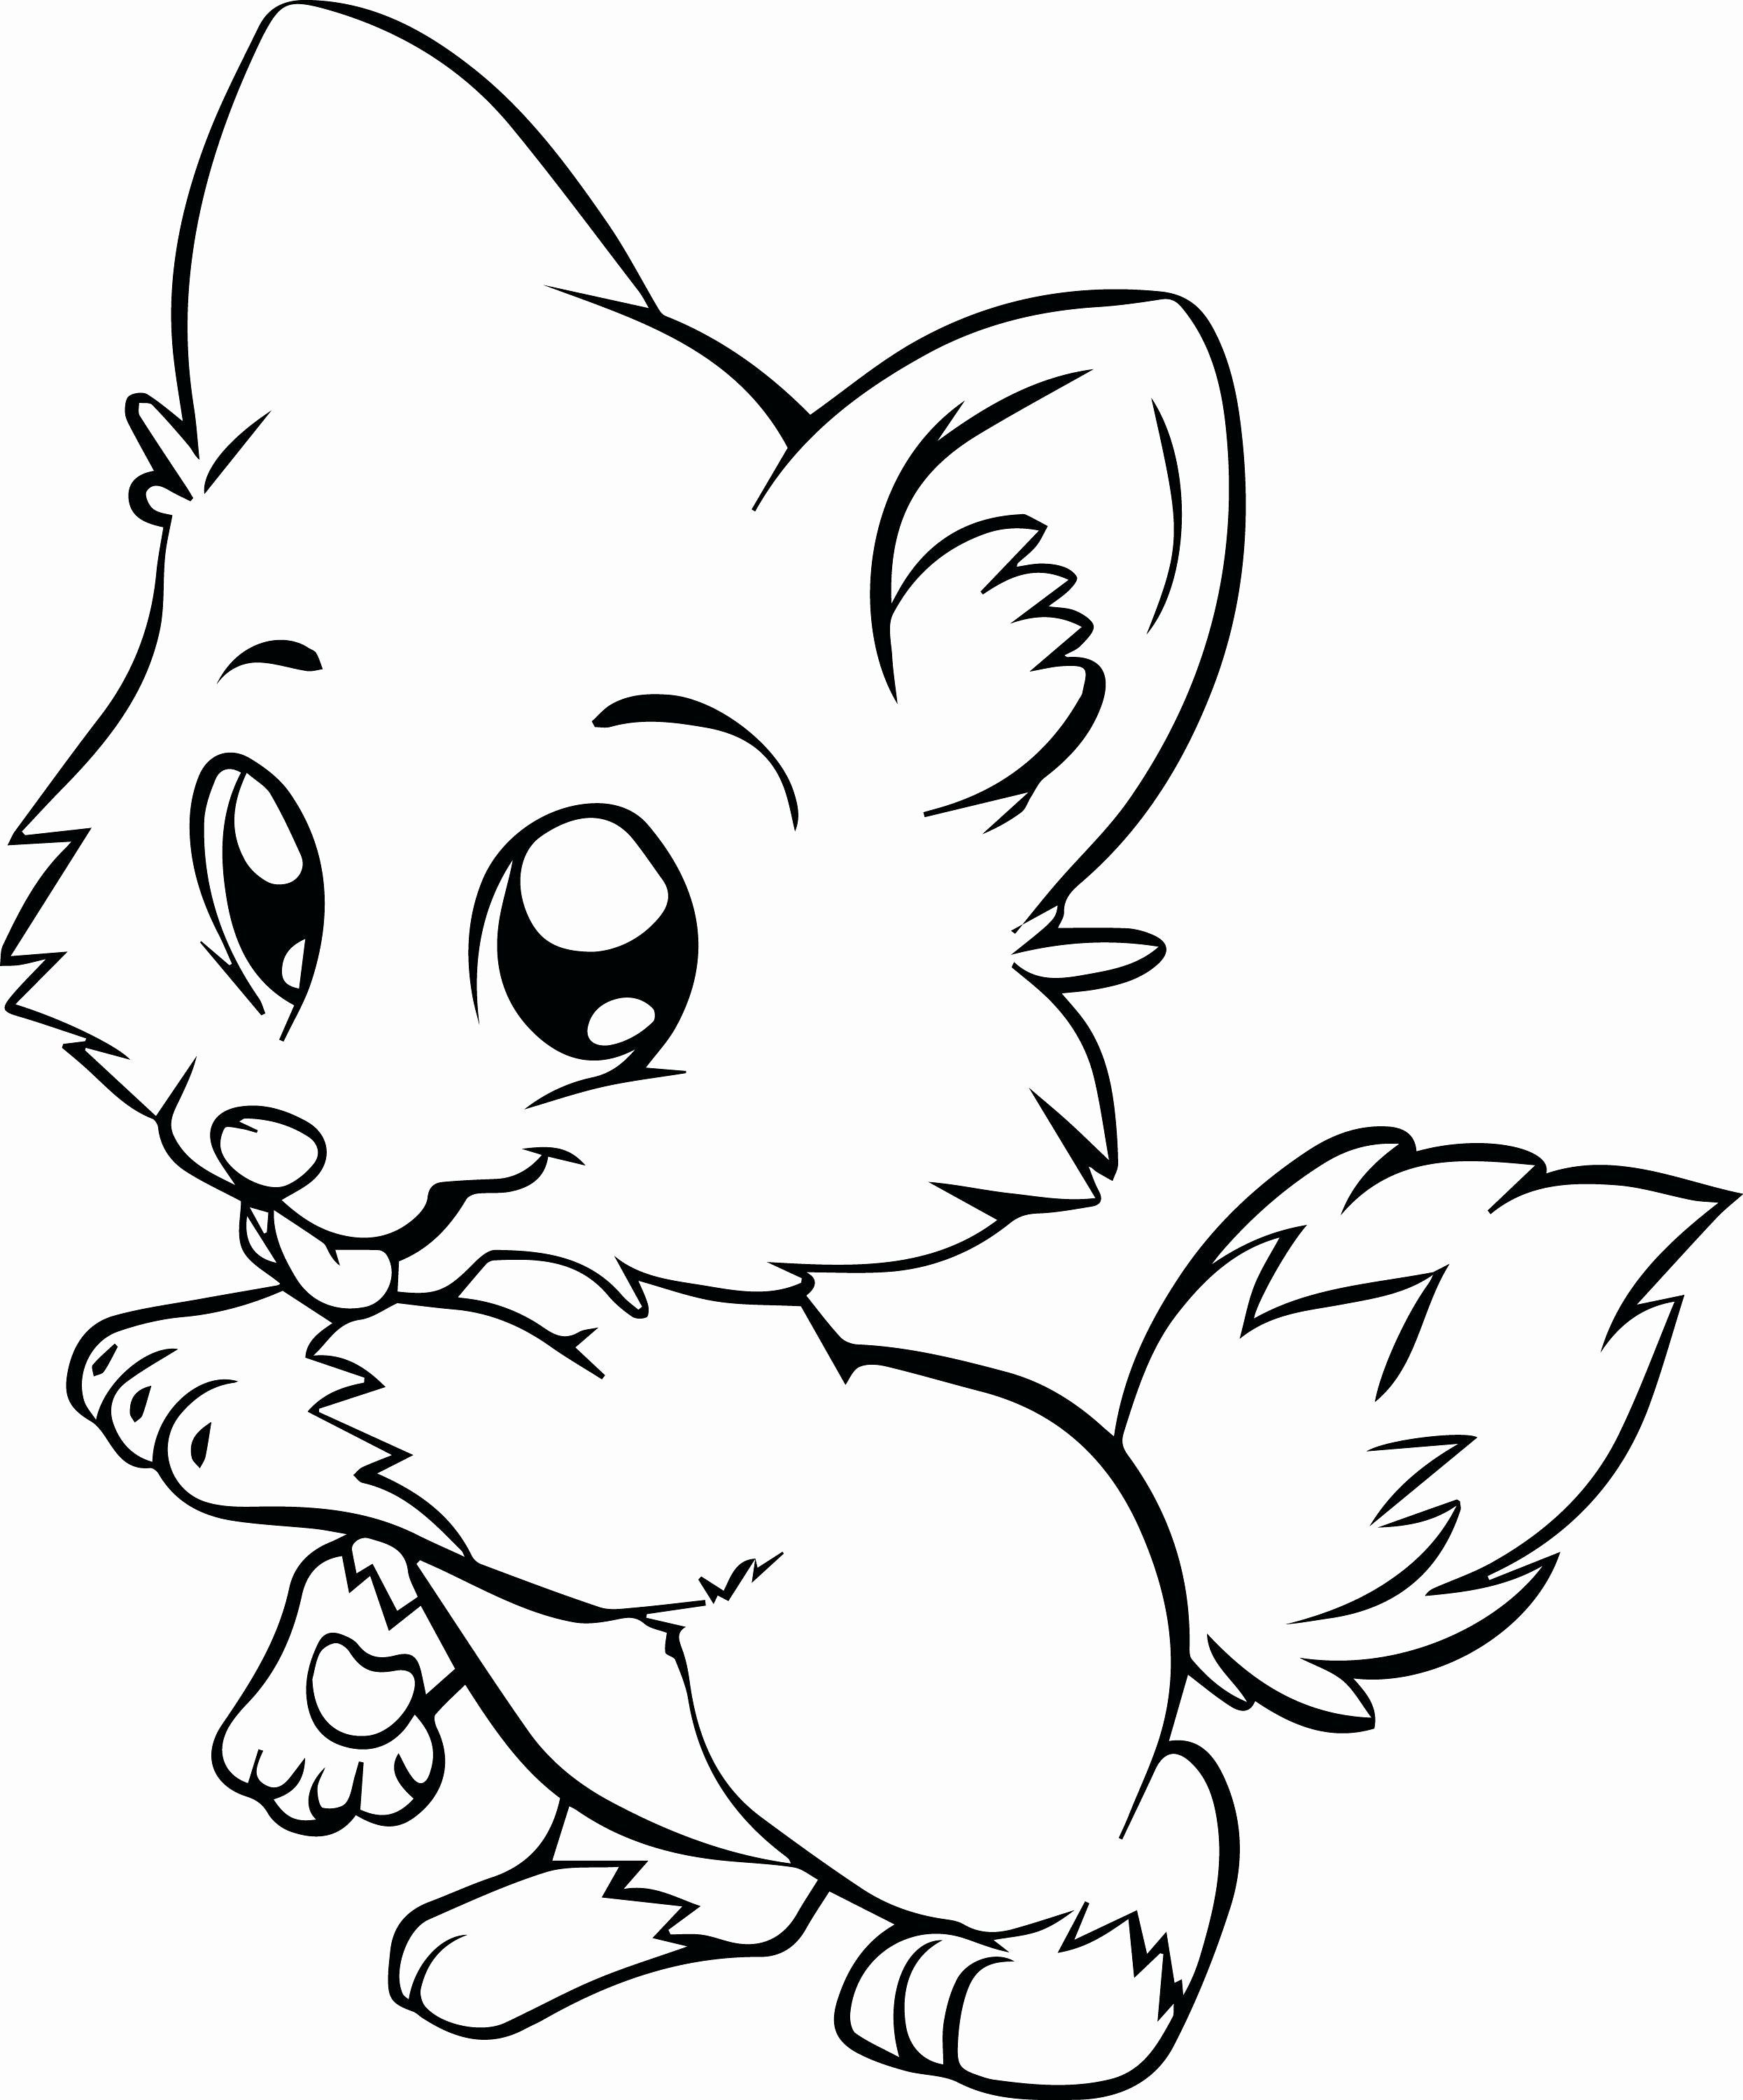 Baby Unicorn Coloring Page Best Of Cute Baby Unicorn Drawing At Getdrawings In 2020 Unicorn Coloring Pages Fox Coloring Page Animal Coloring Pages